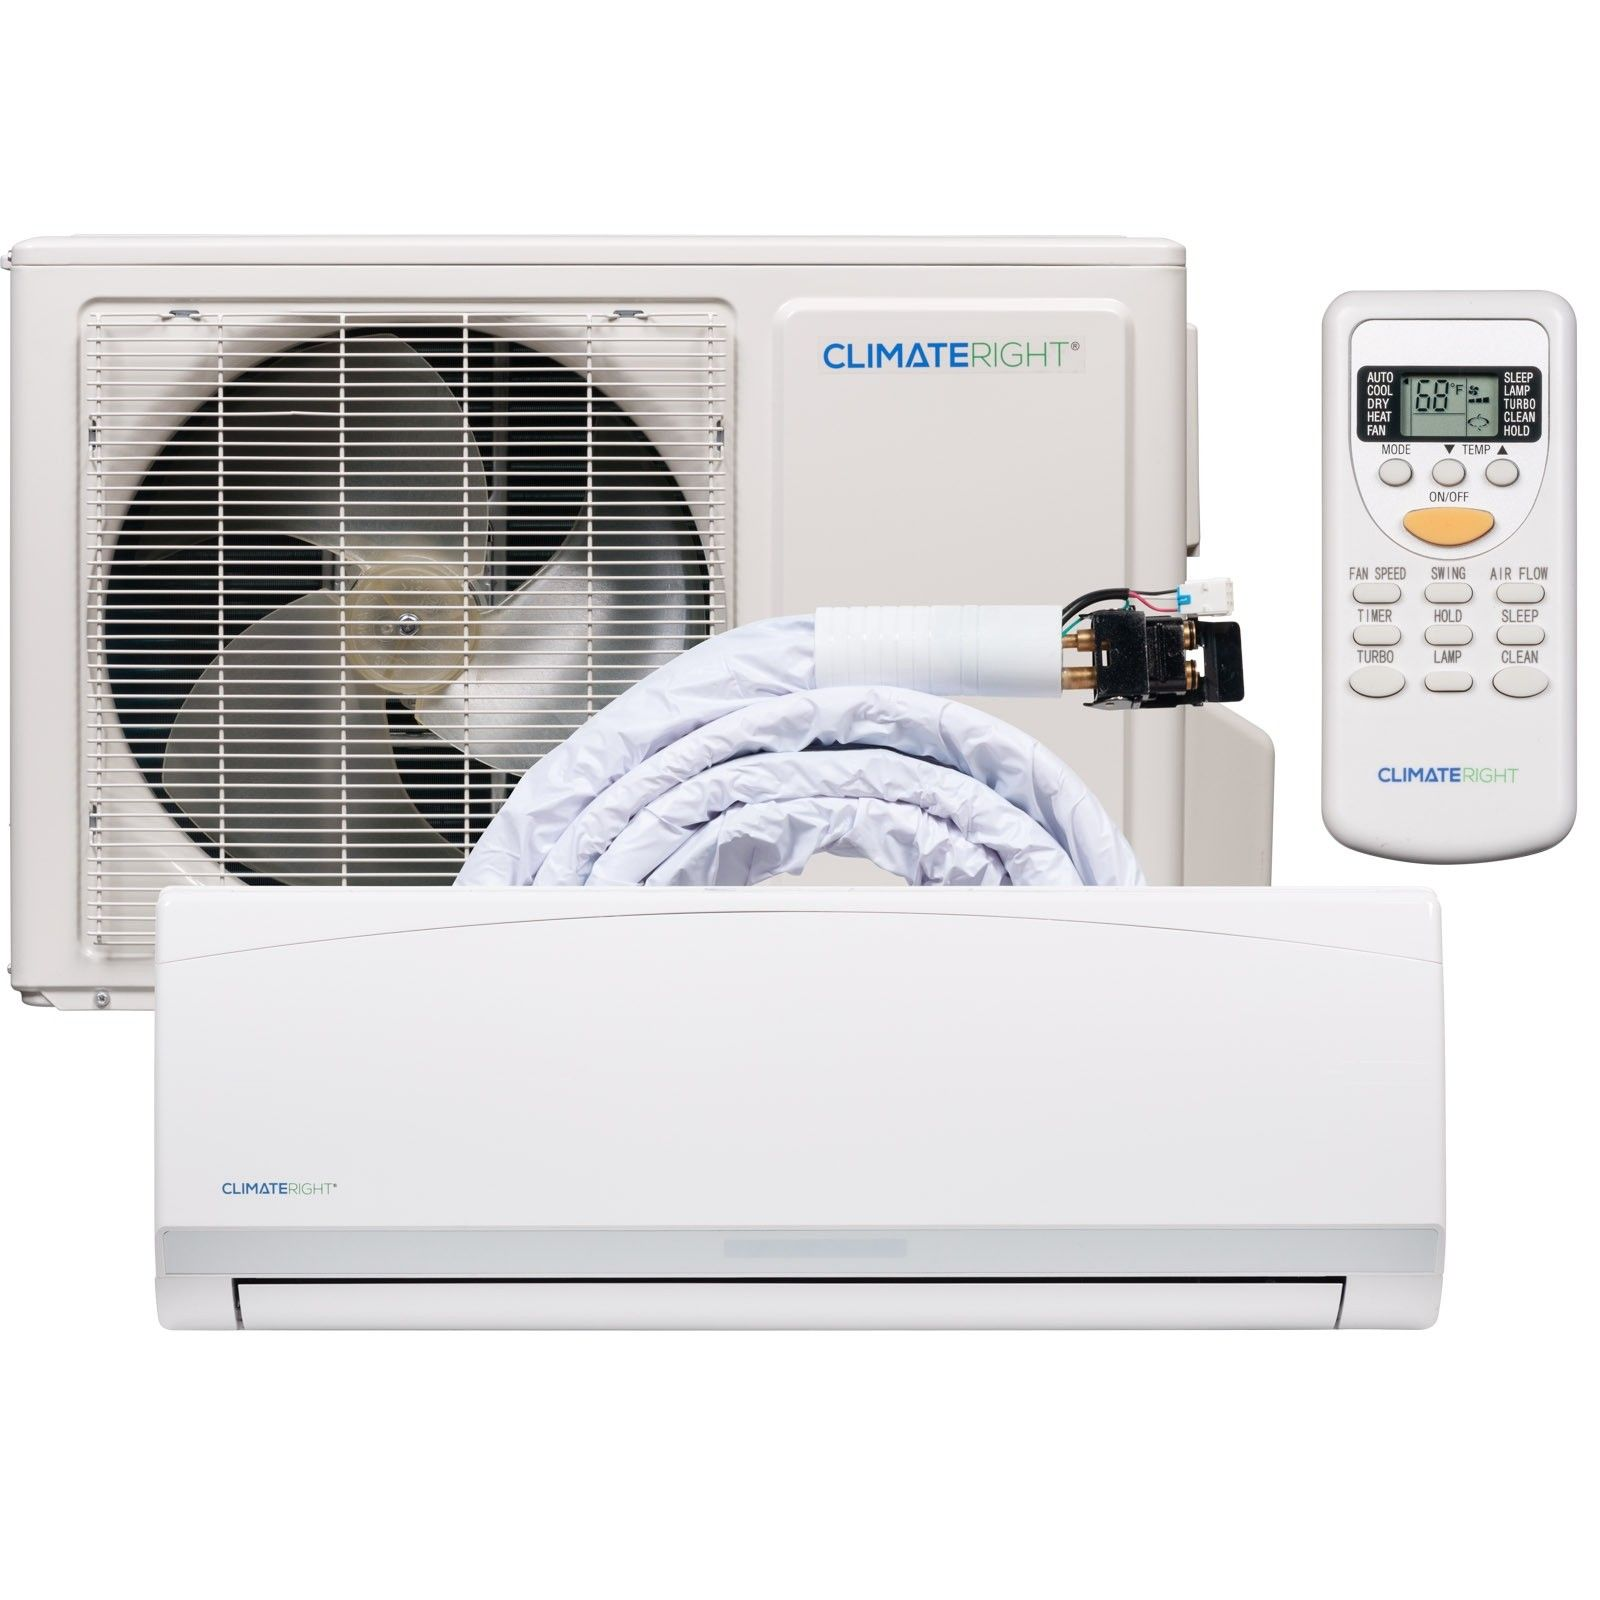 CR12000SACH 12,000 BTU Ductless MiniSplit Air Conditioner